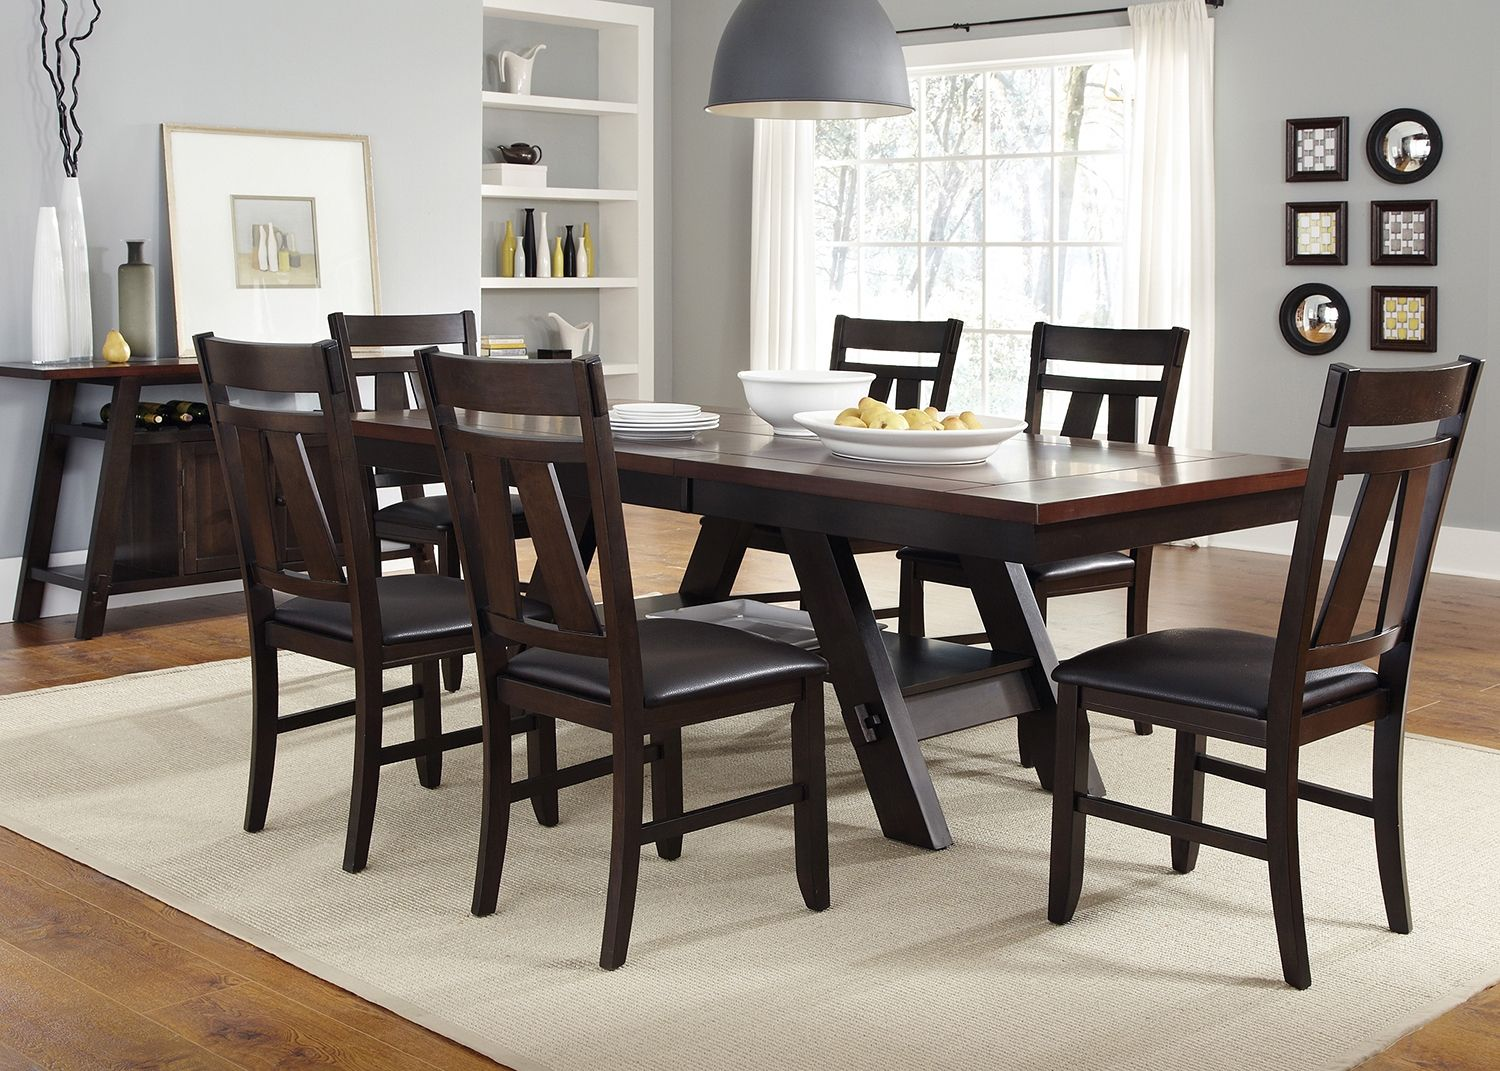 Lawson Dining Room Collection